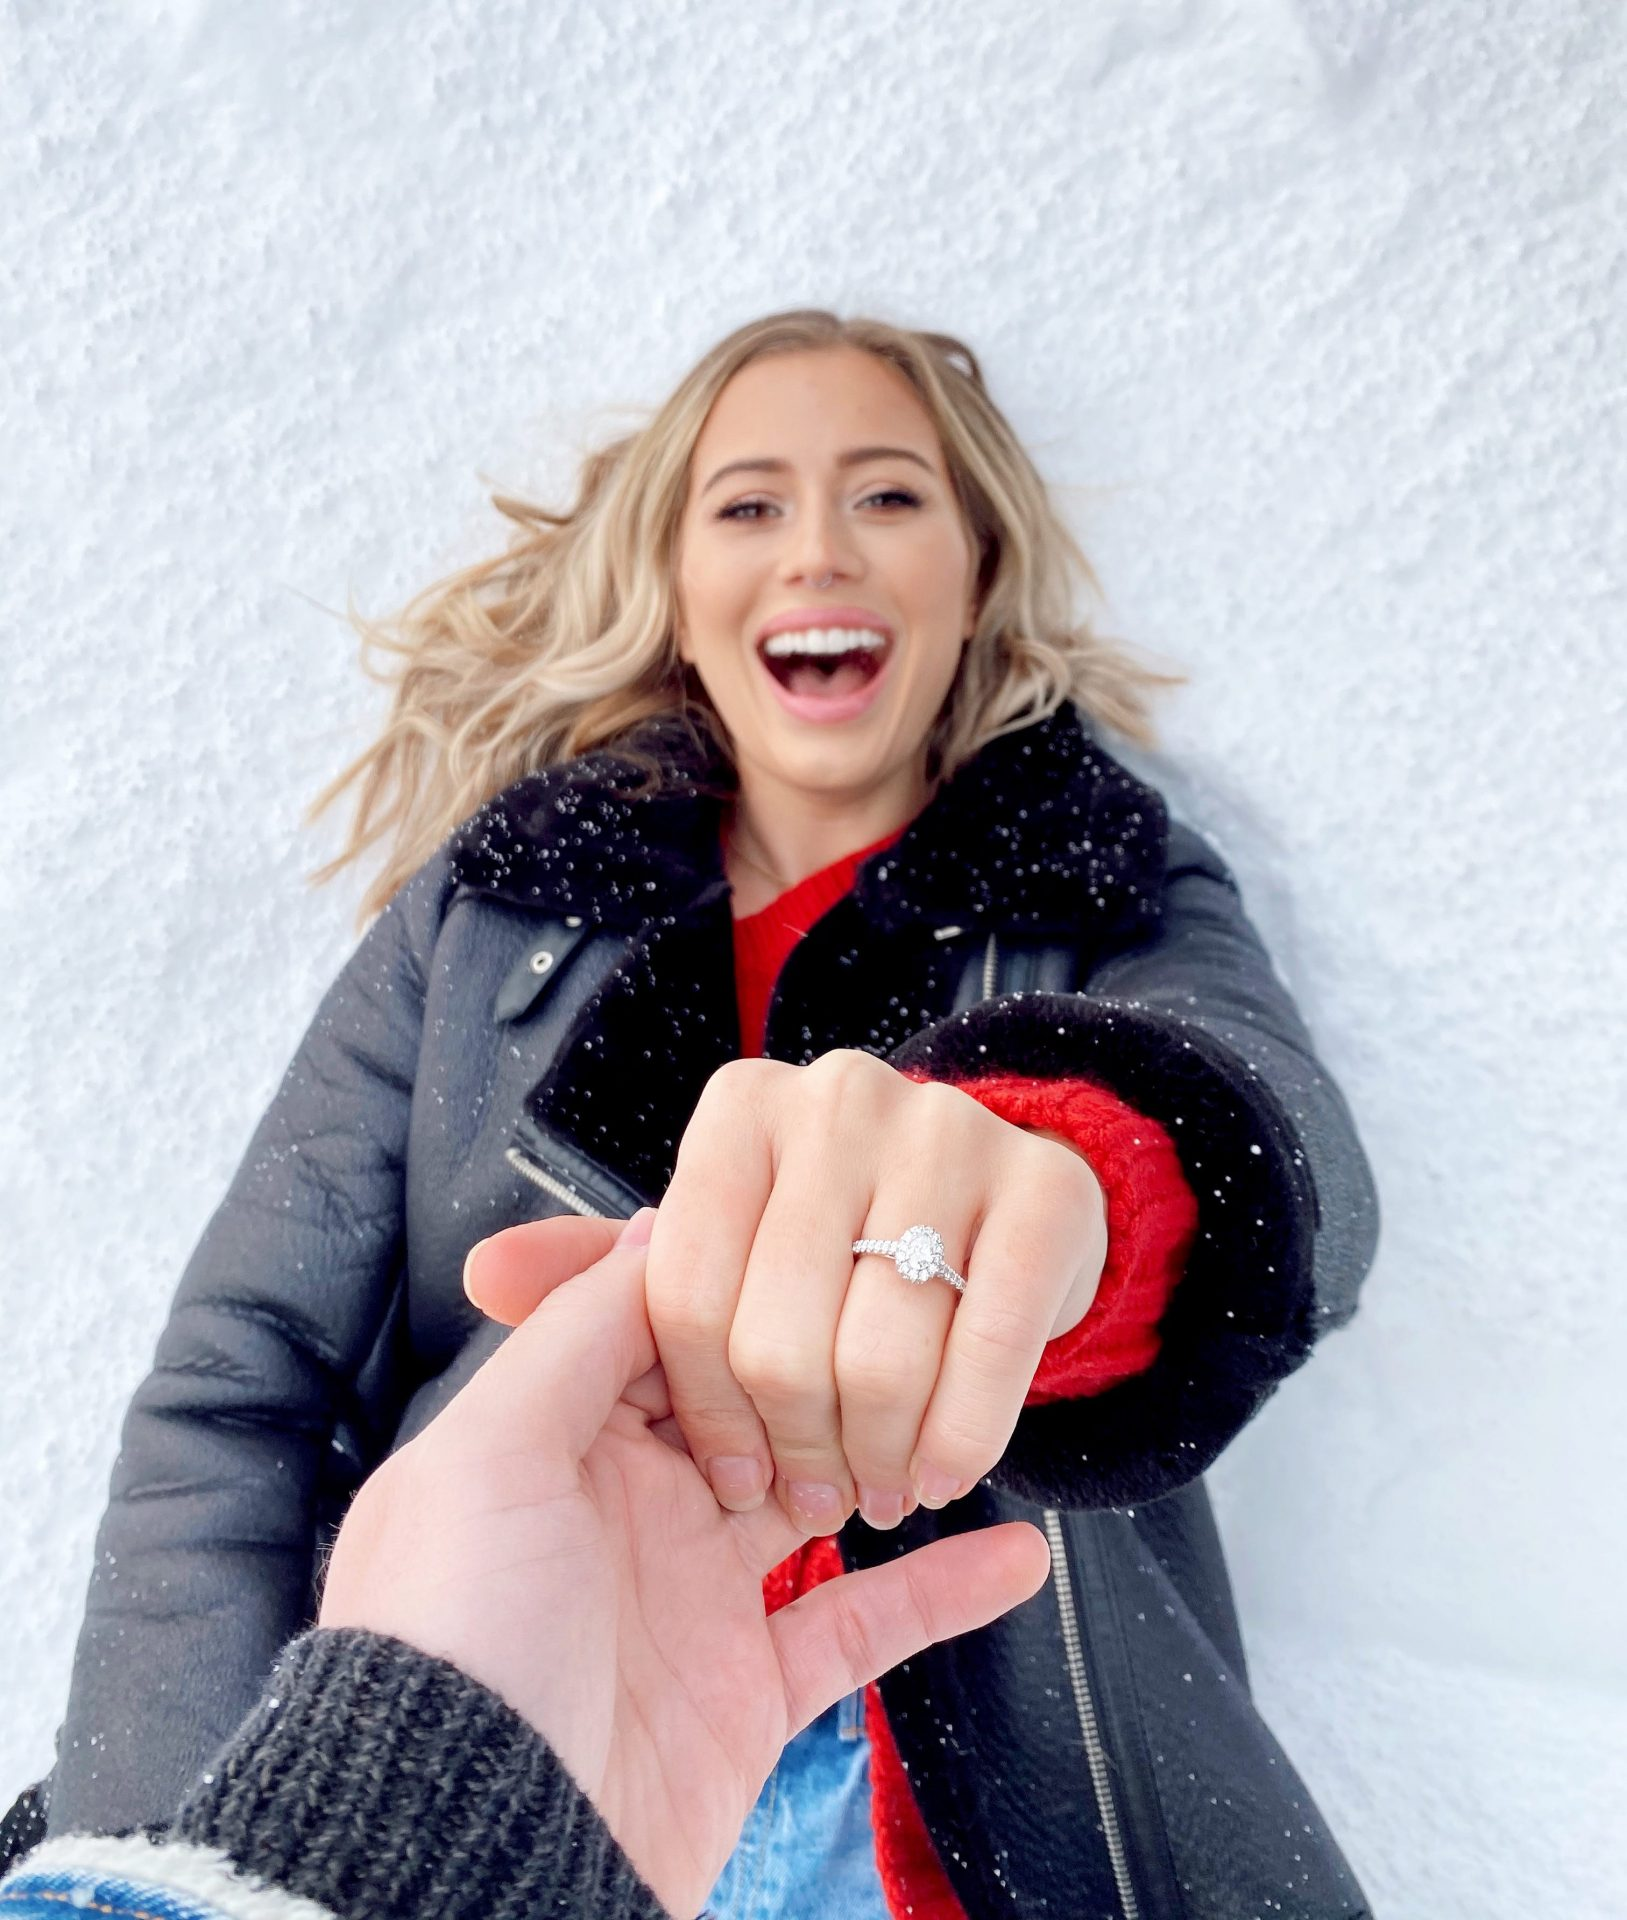 Karissa laying in the snow with Glen holding her hand towards the camera. Karissa is wearing a diamond engagement ring